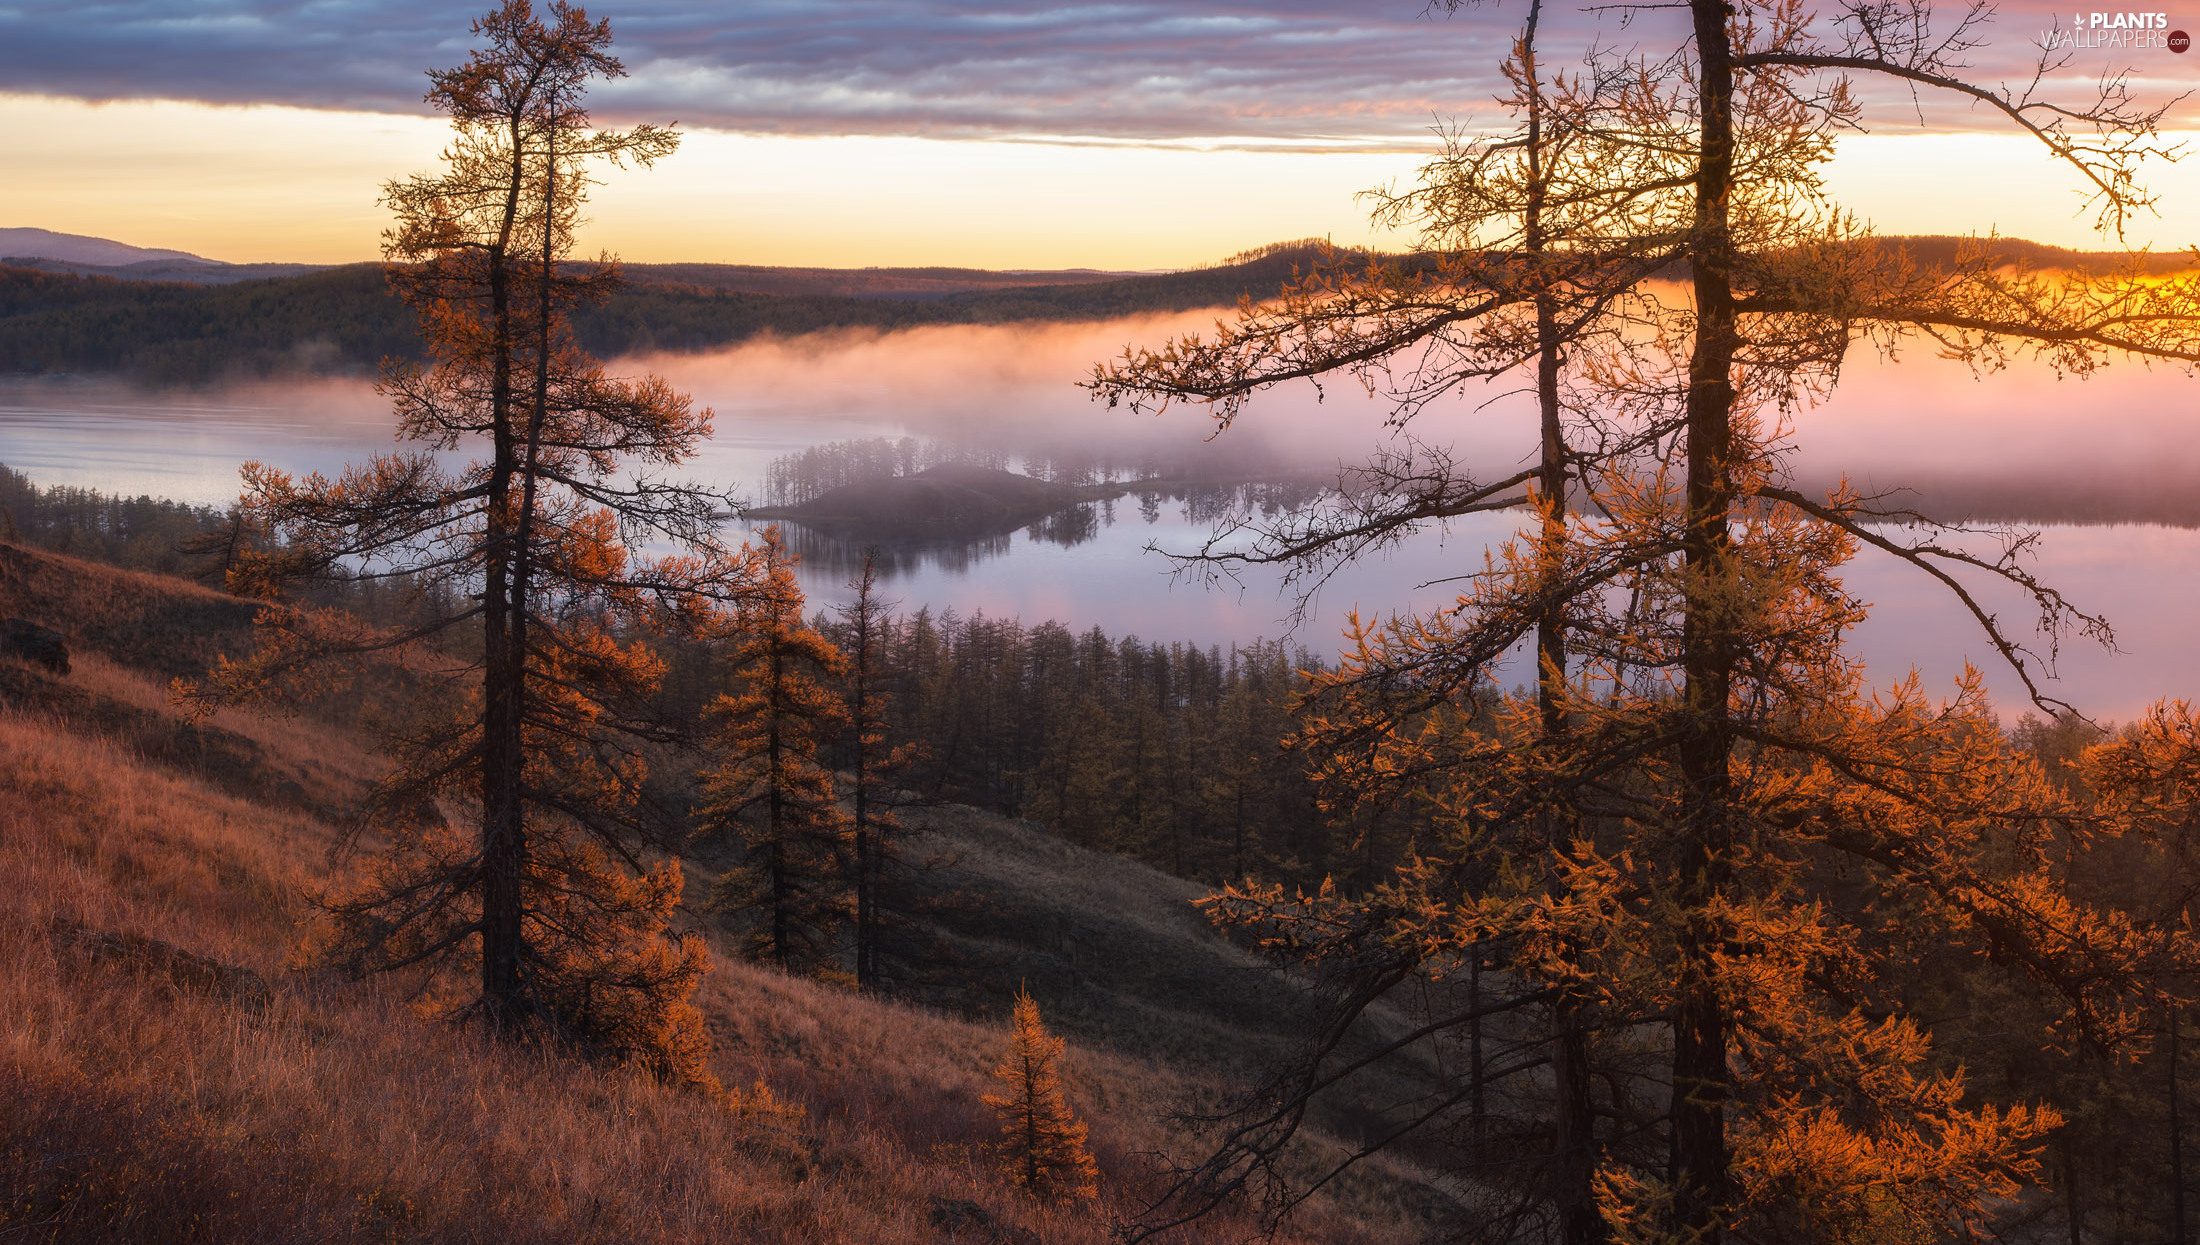 lake, trees, Fog, viewes, clouds, Mountains, autumn, grass